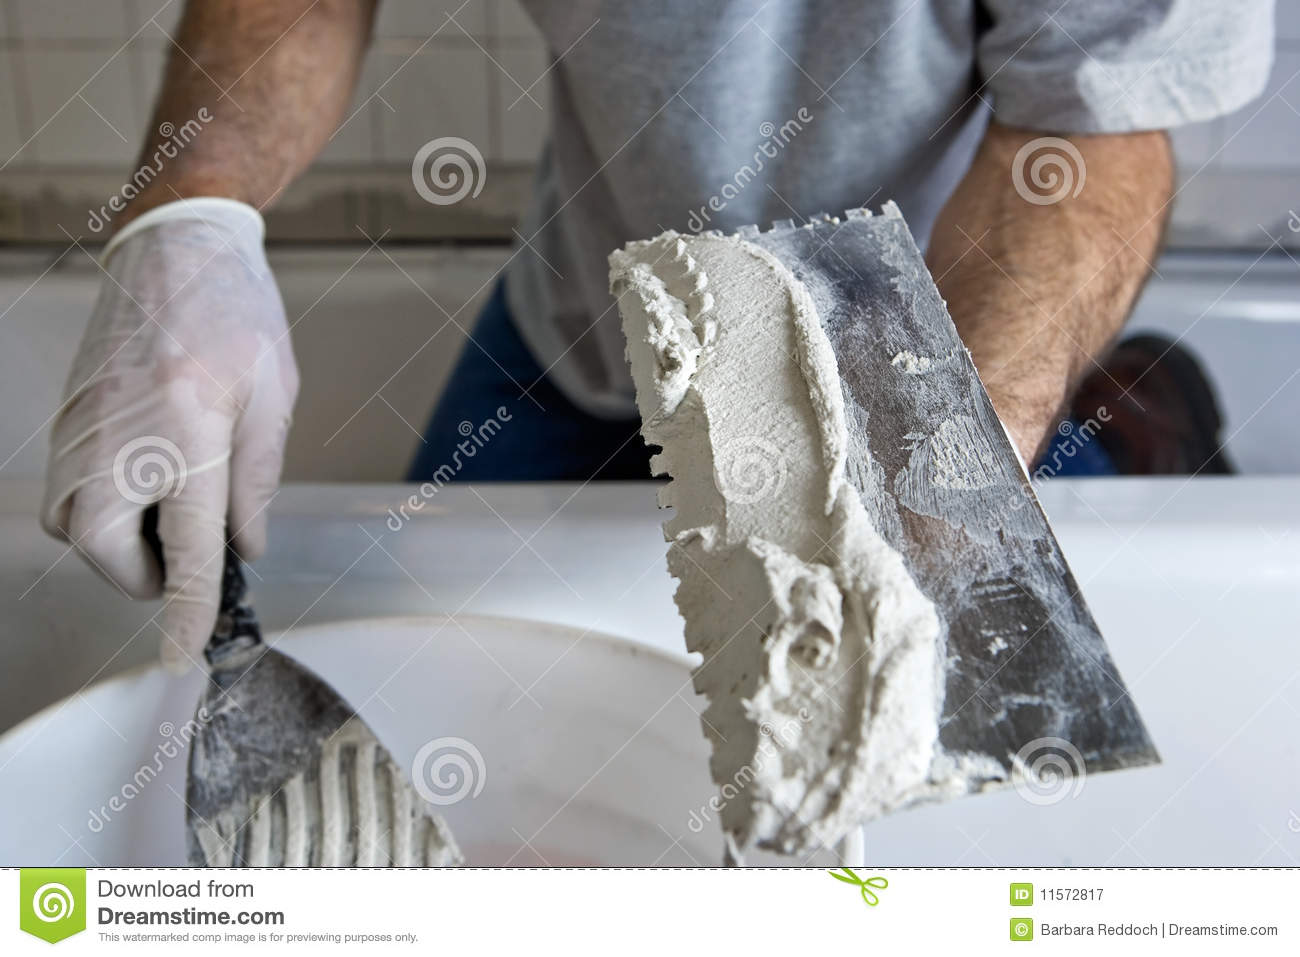 Man Working with Trowel and Mortar Tiling a Wall